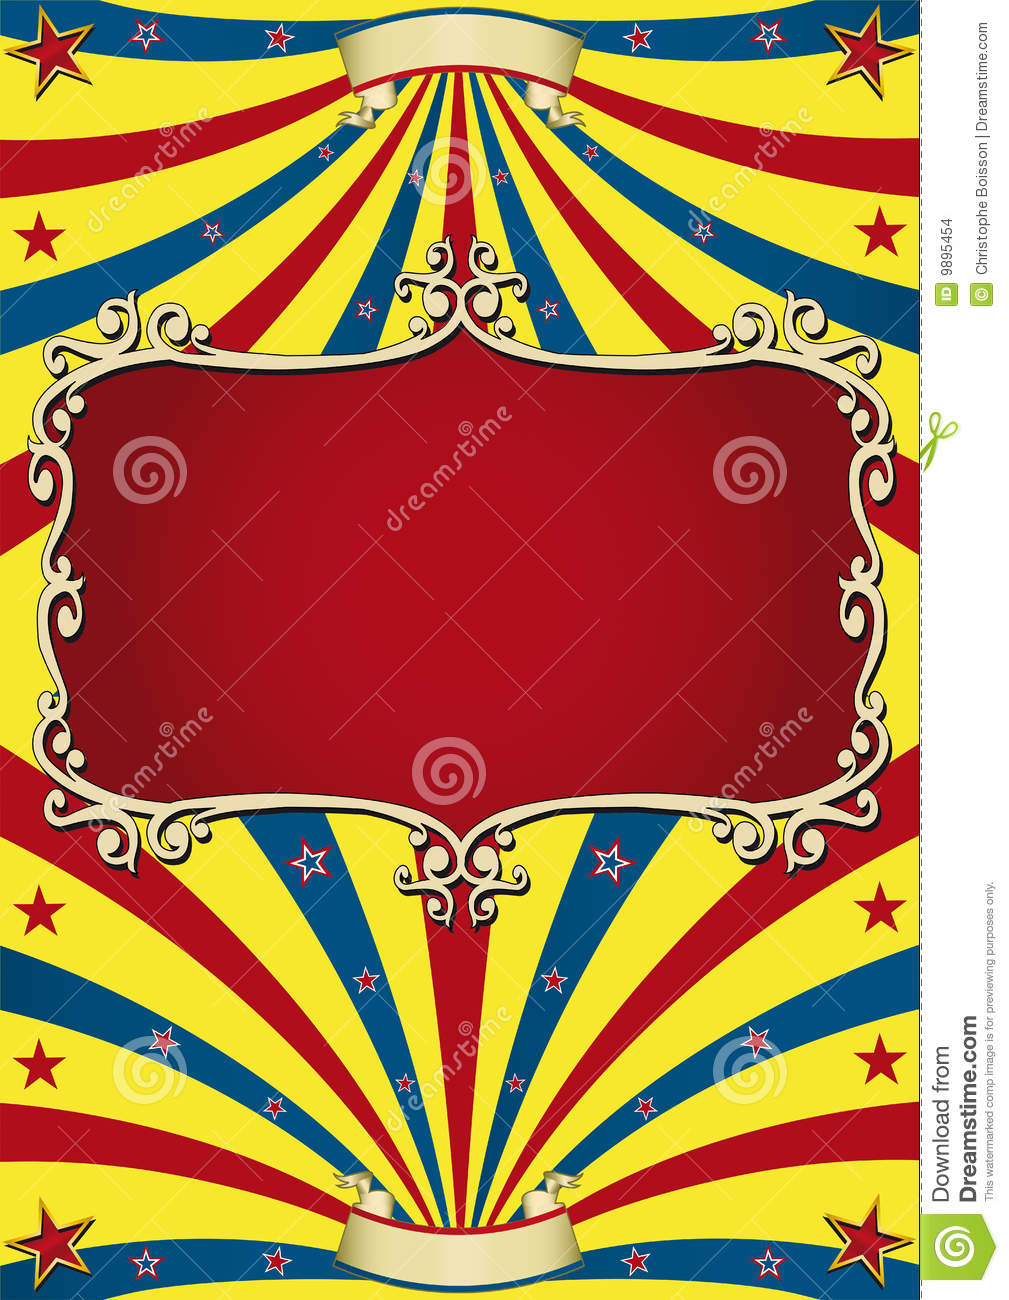 old paper circus stock images